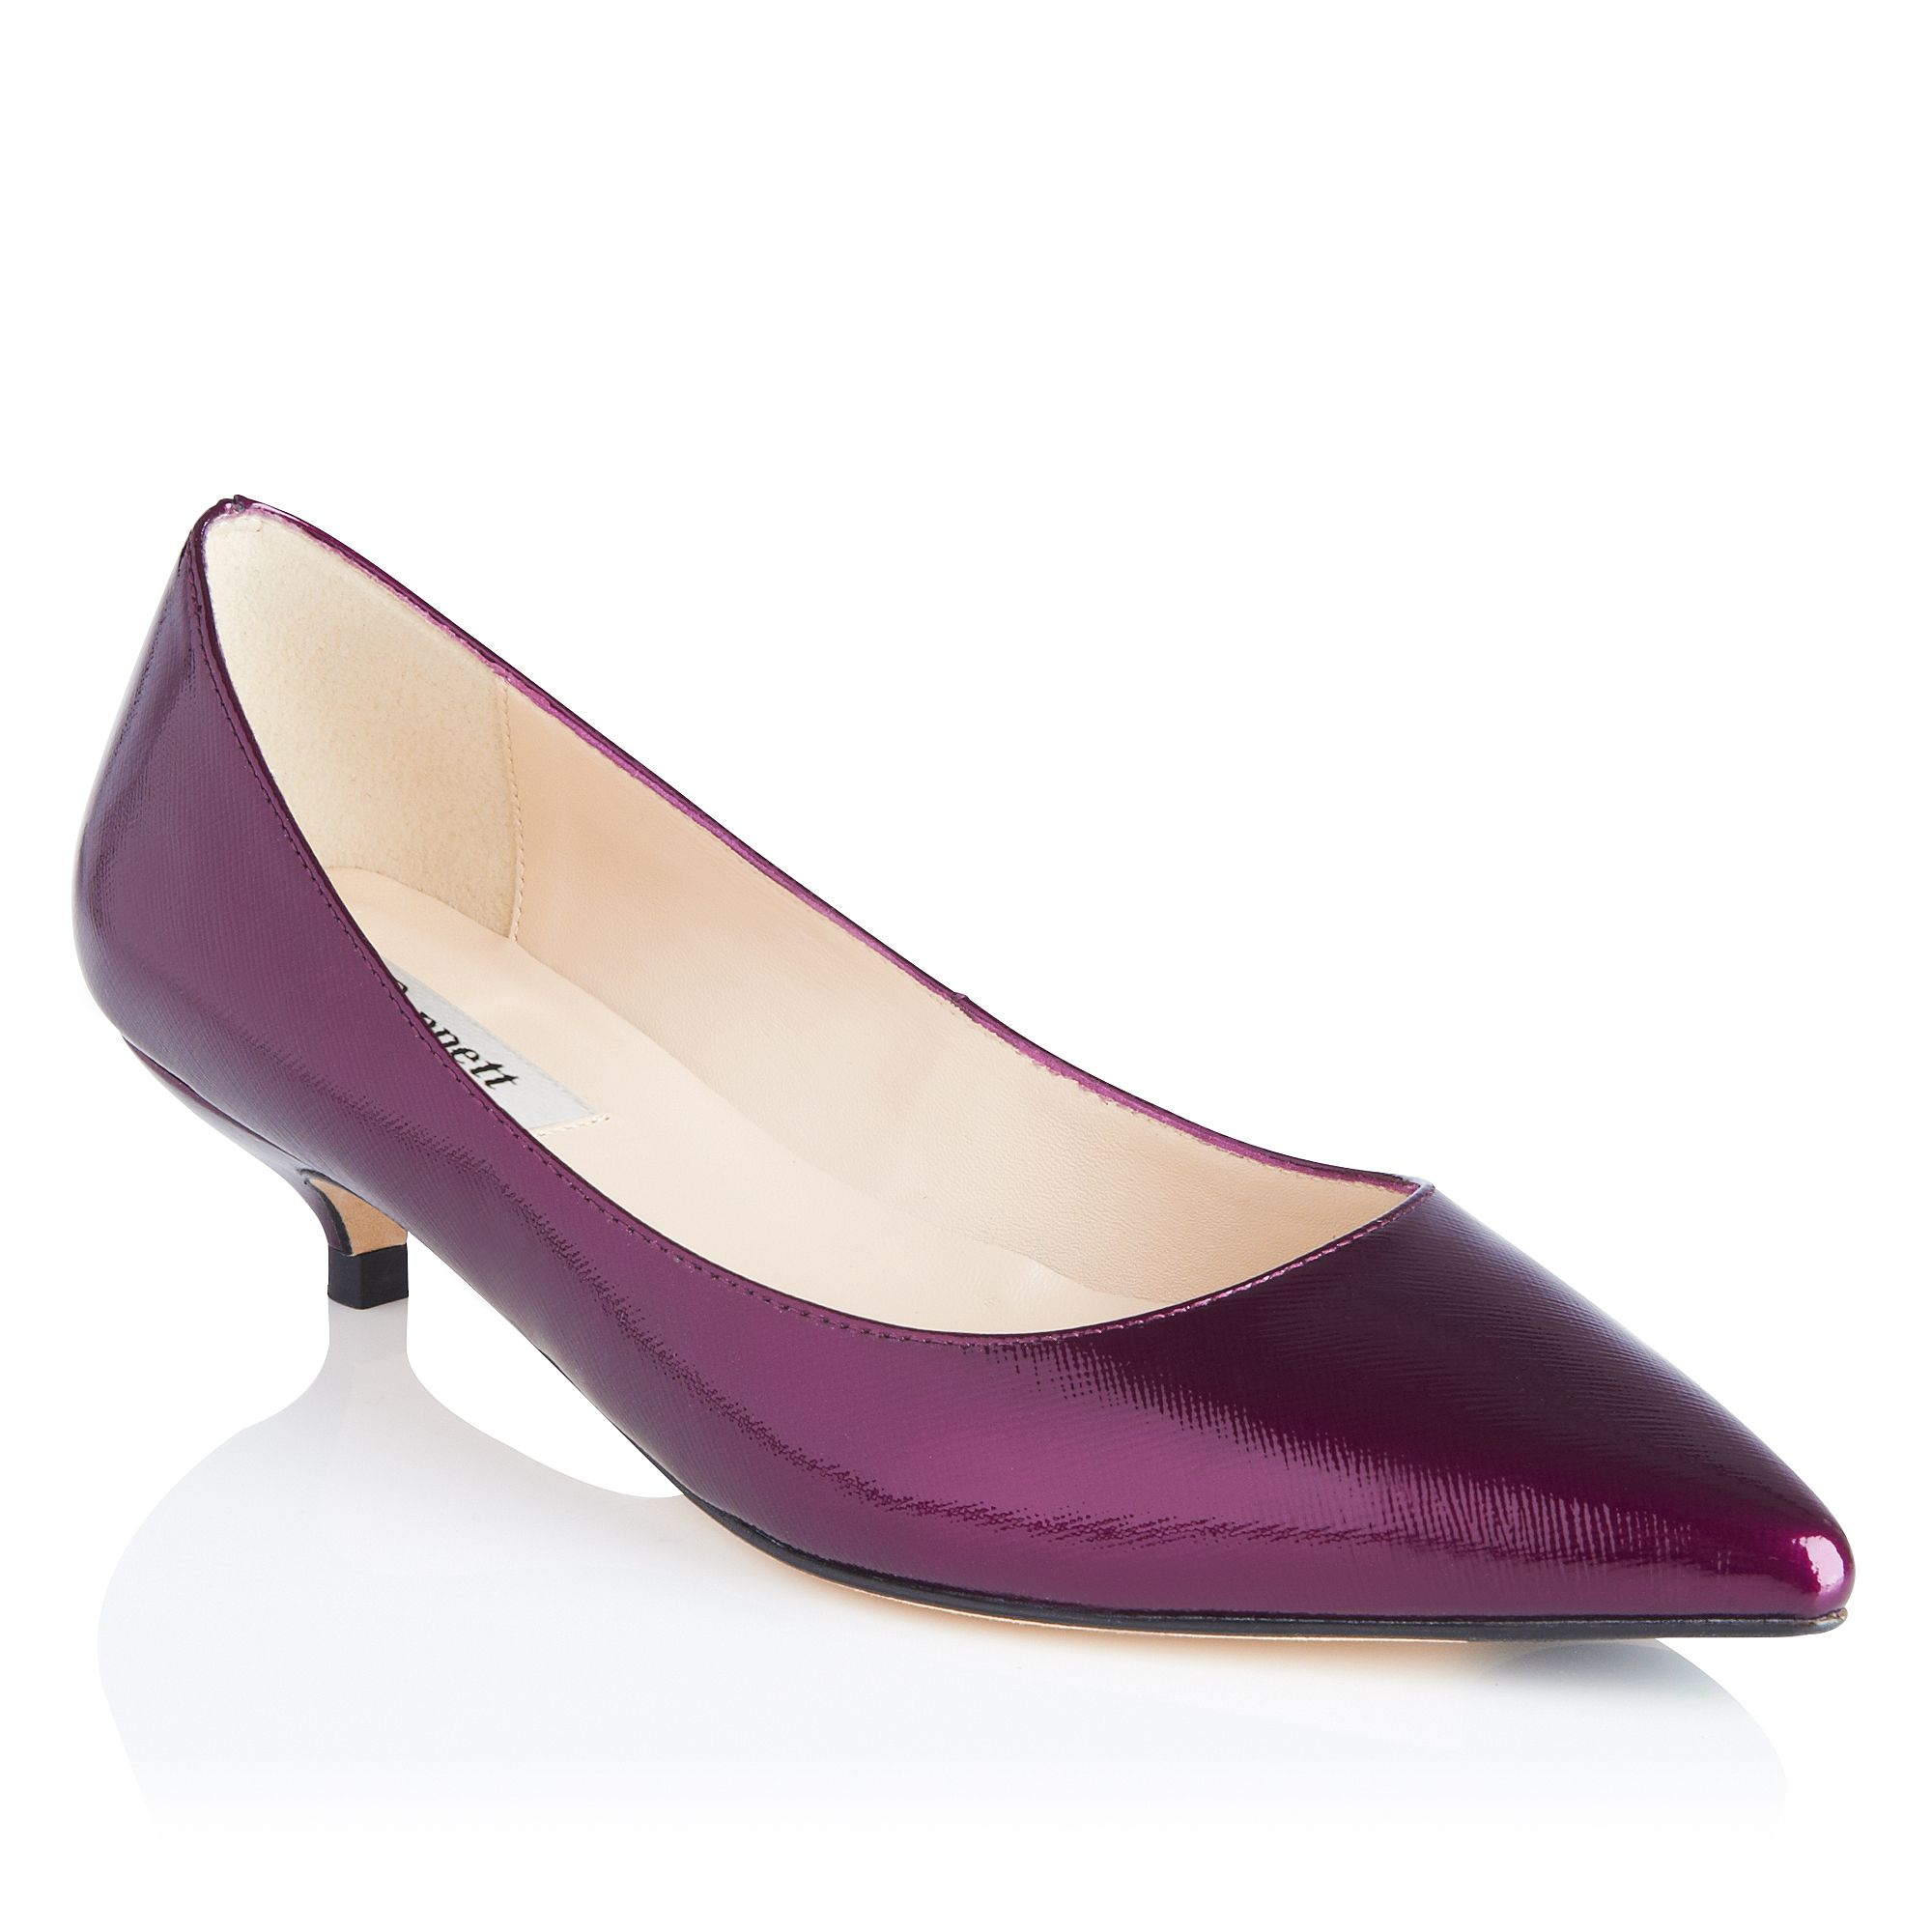 L.k.bennett Kitty Patent Leather Mini Kitten Heel Shoes in Purple ...